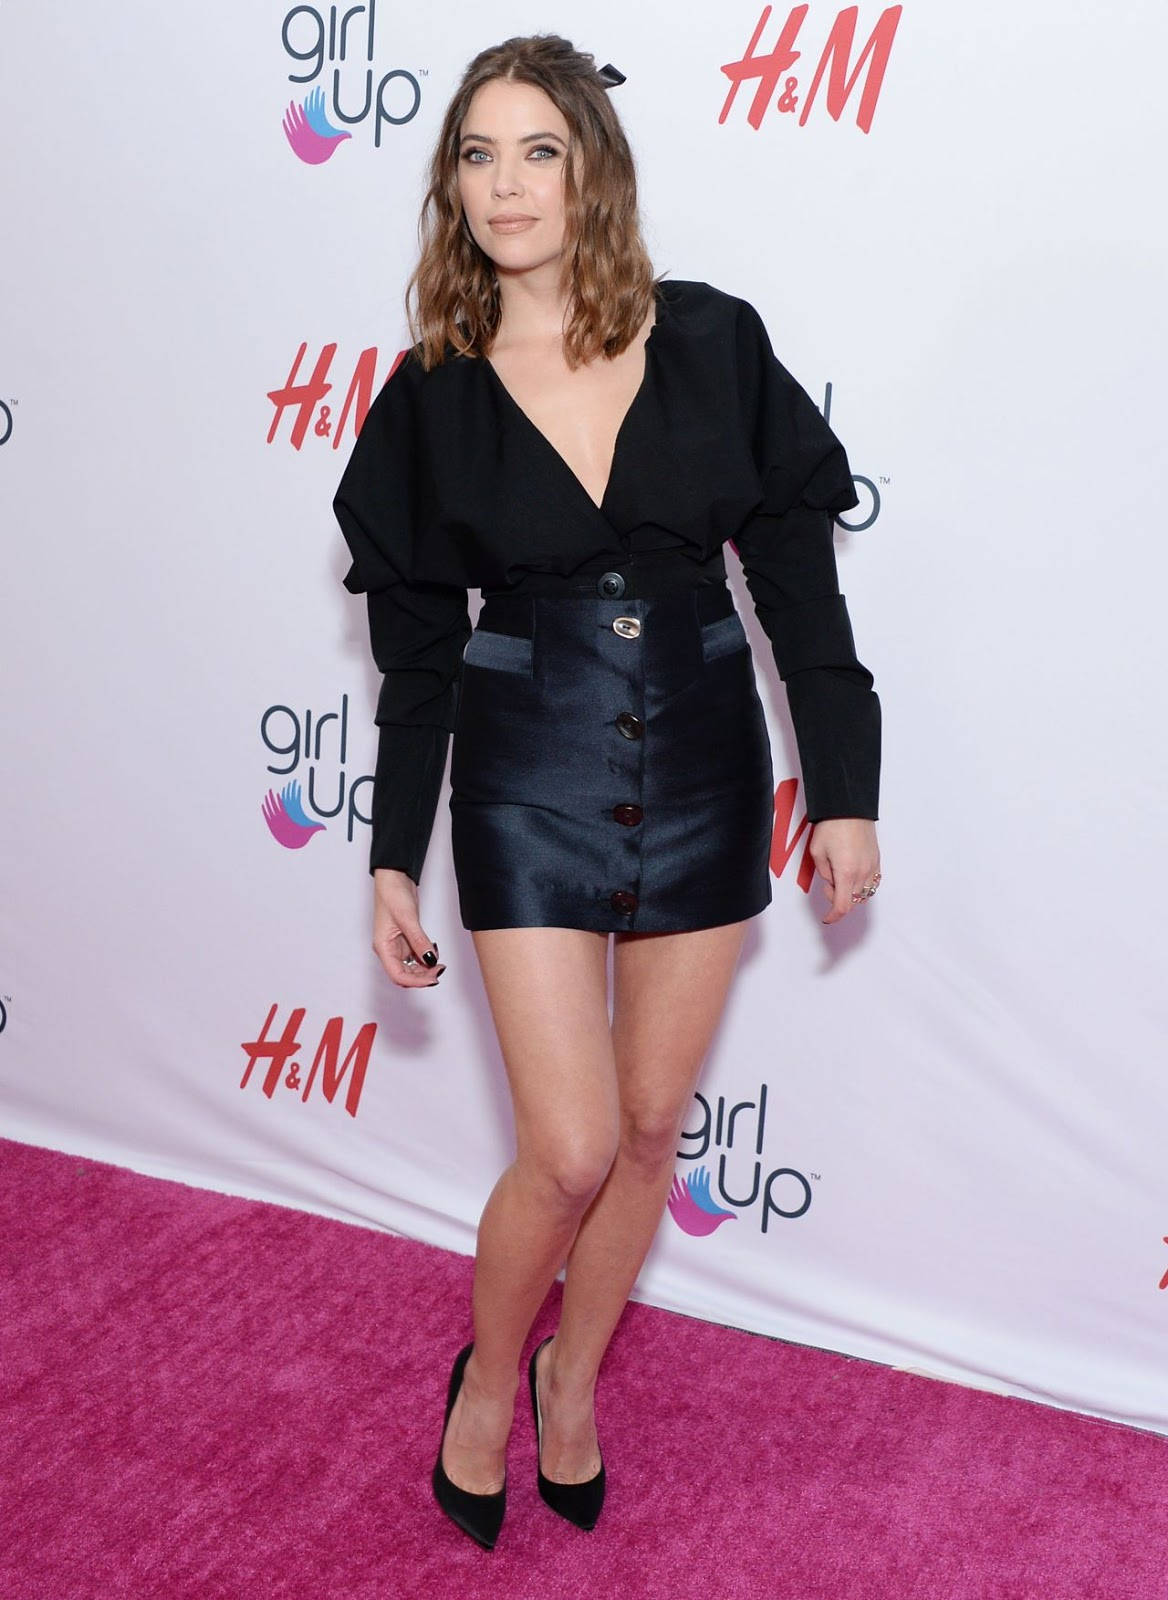 Ashley Benson flaunts short skirt at the 2019 Girl Up #GirlHero Awards